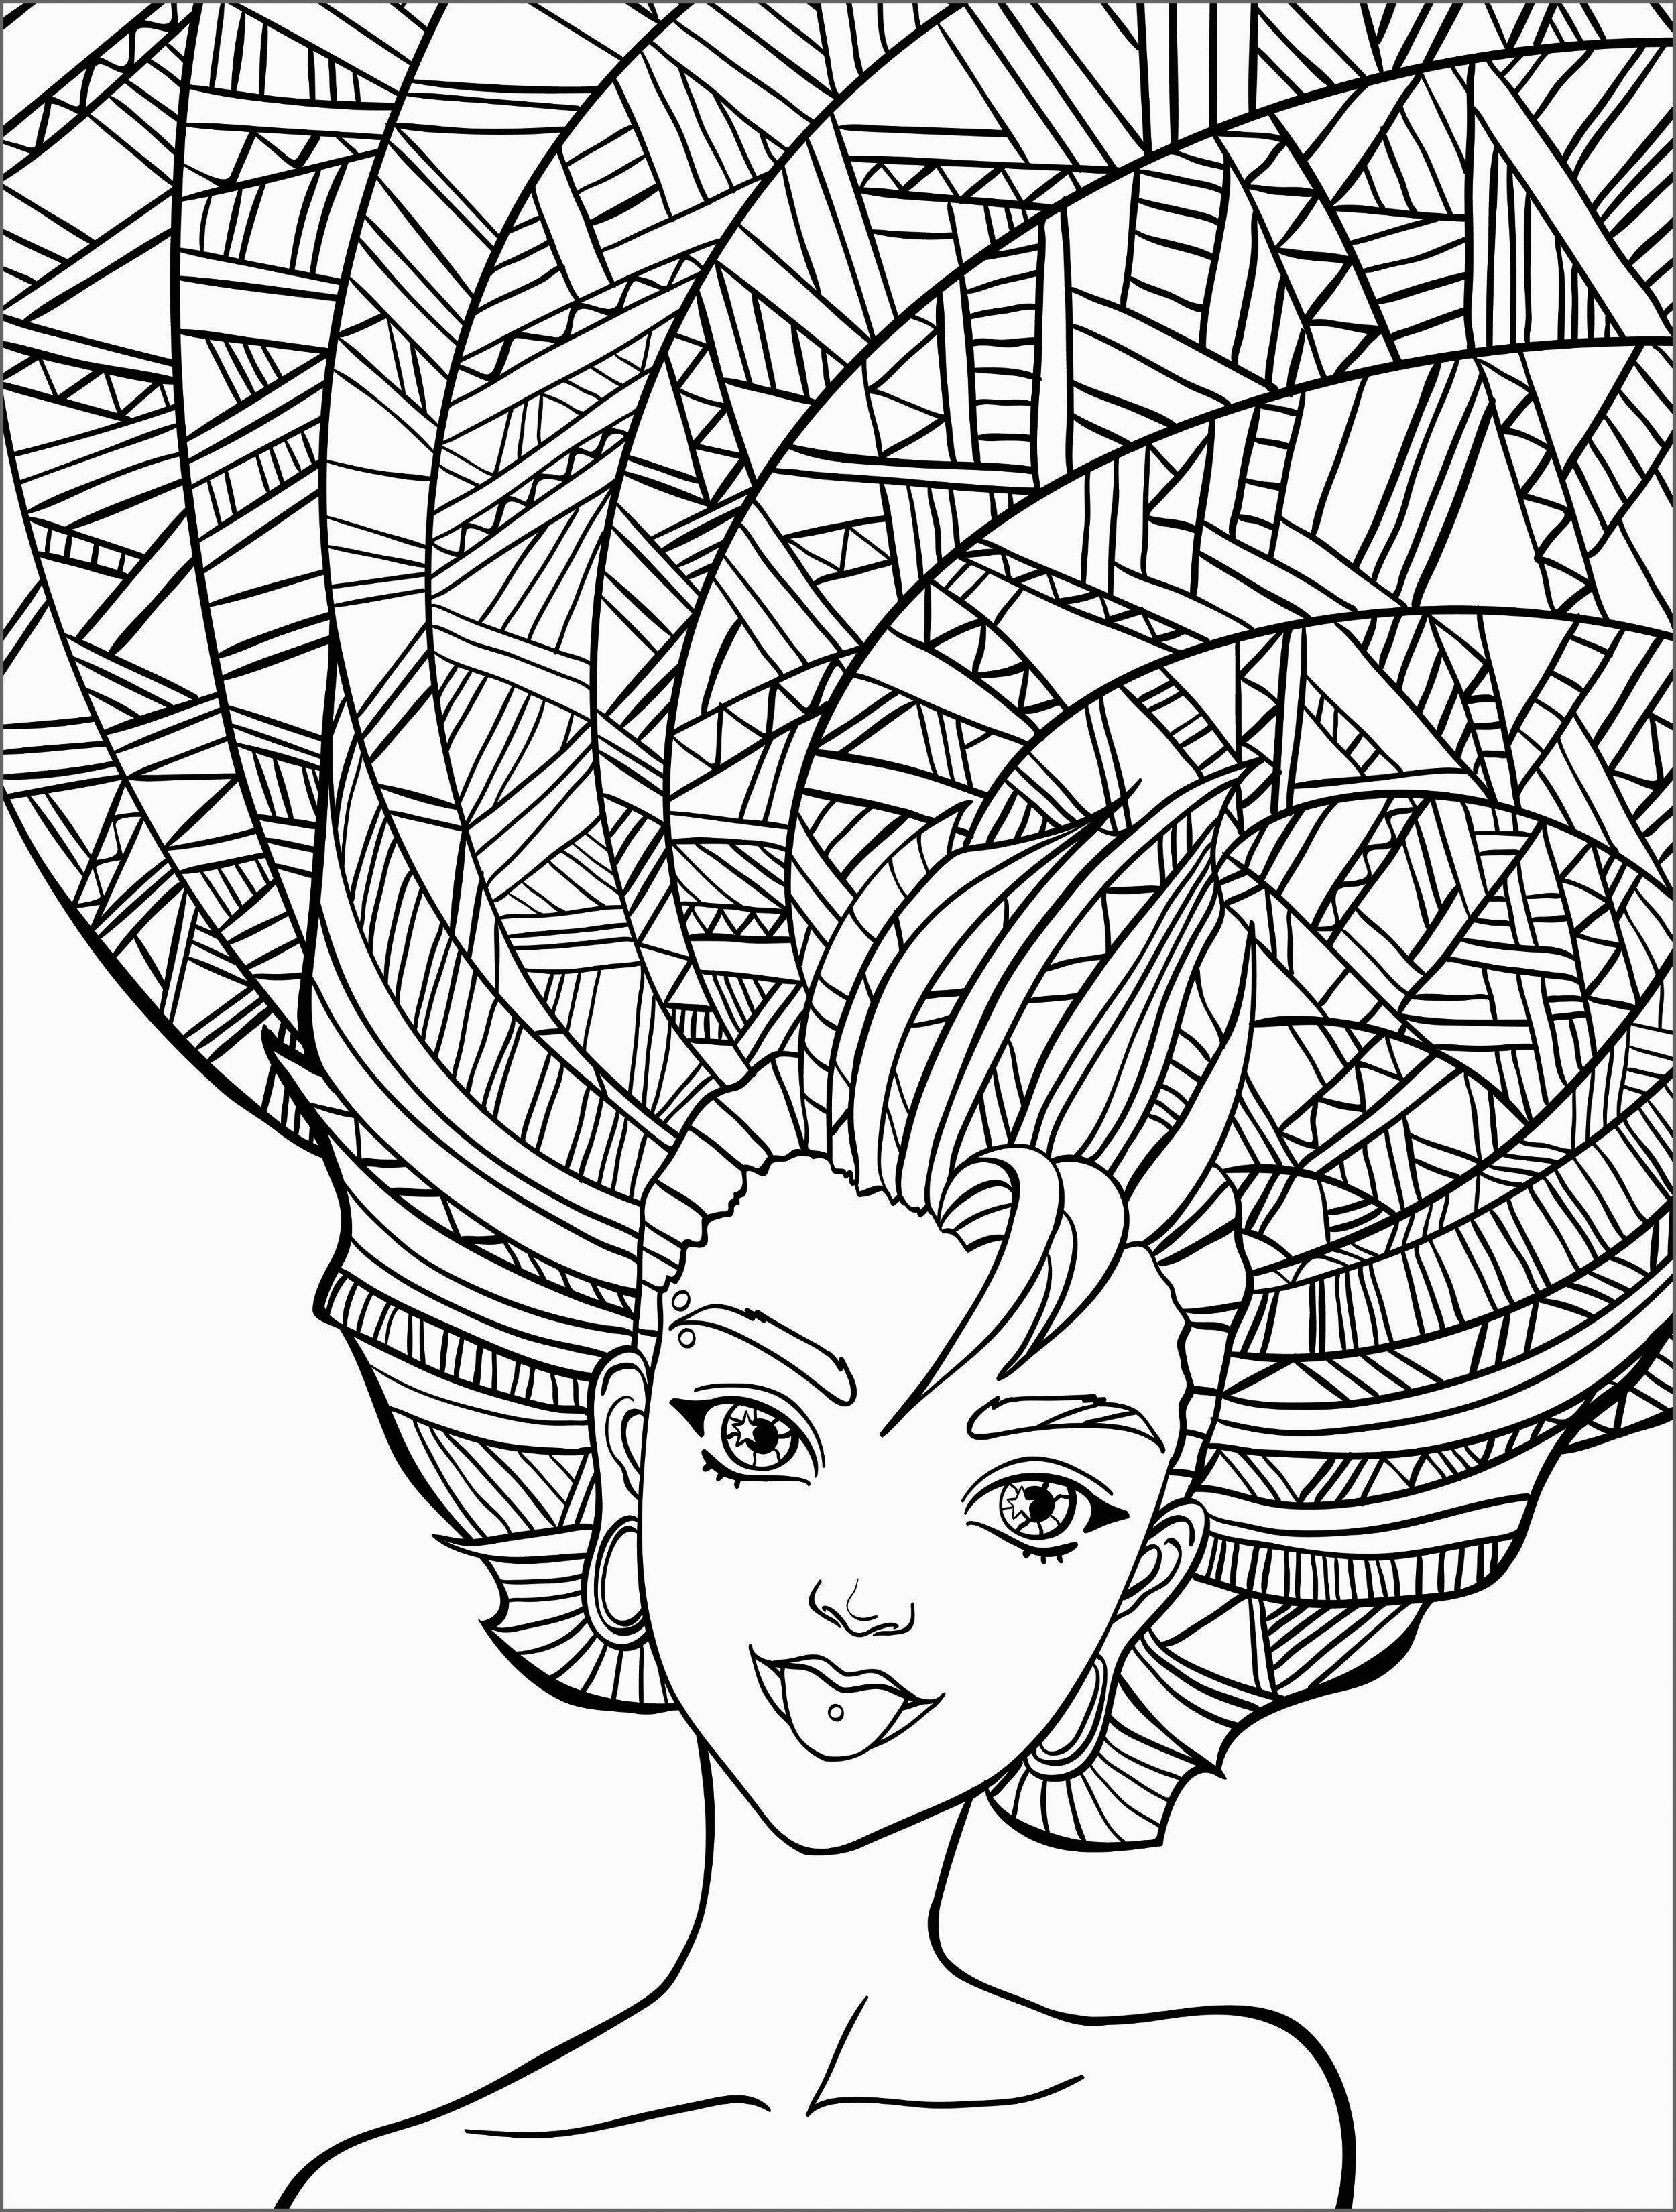 coloring pages free printable adults 10 free printable holiday adult coloring pages adults coloring free pages printable